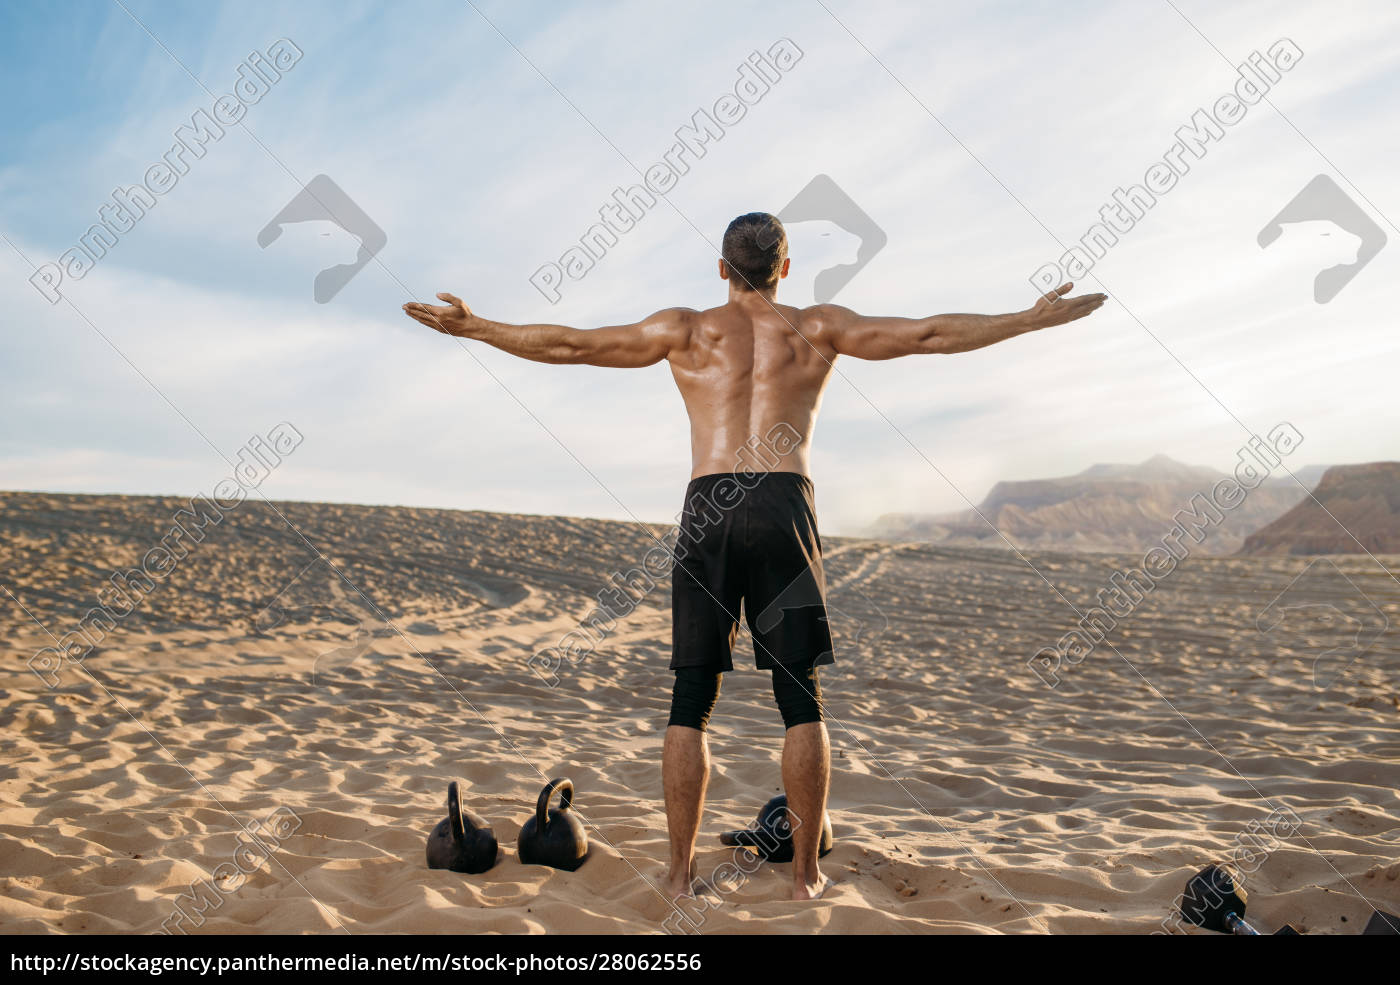 sportsman, with, weights, in, desert, , back - 28062556